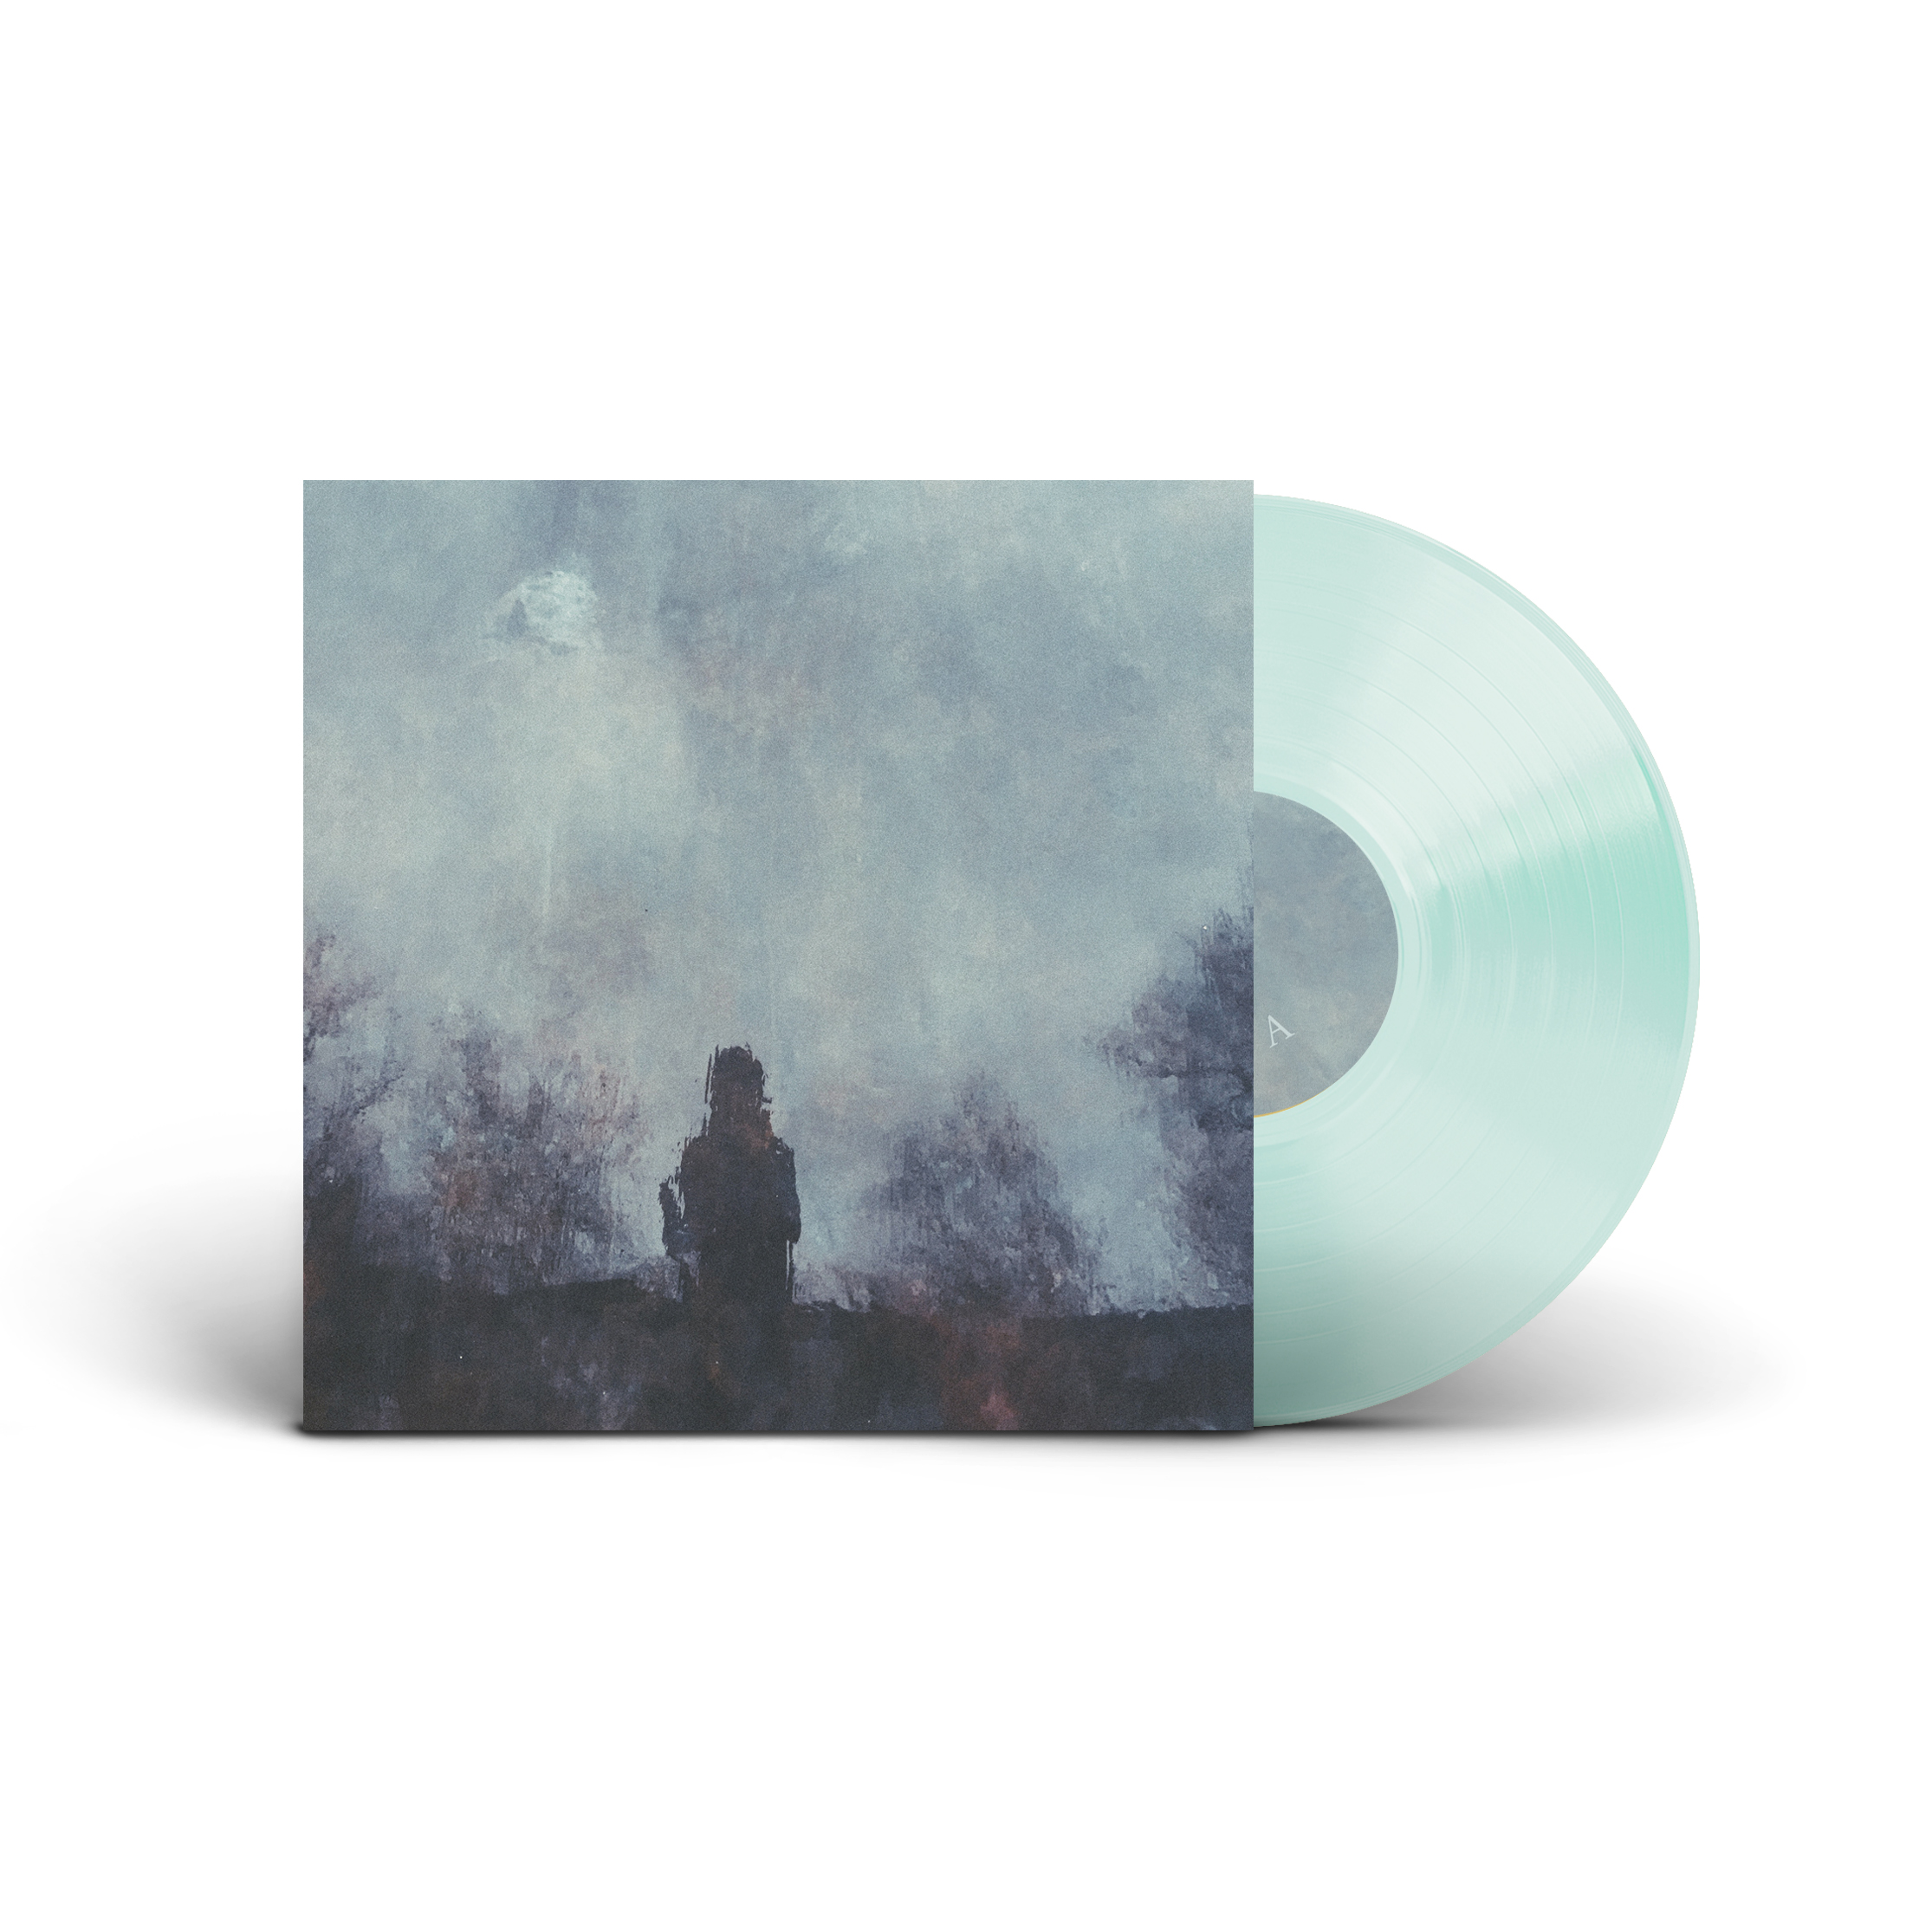 Stray Theories - All That Was Lost - Transparent Blue LP